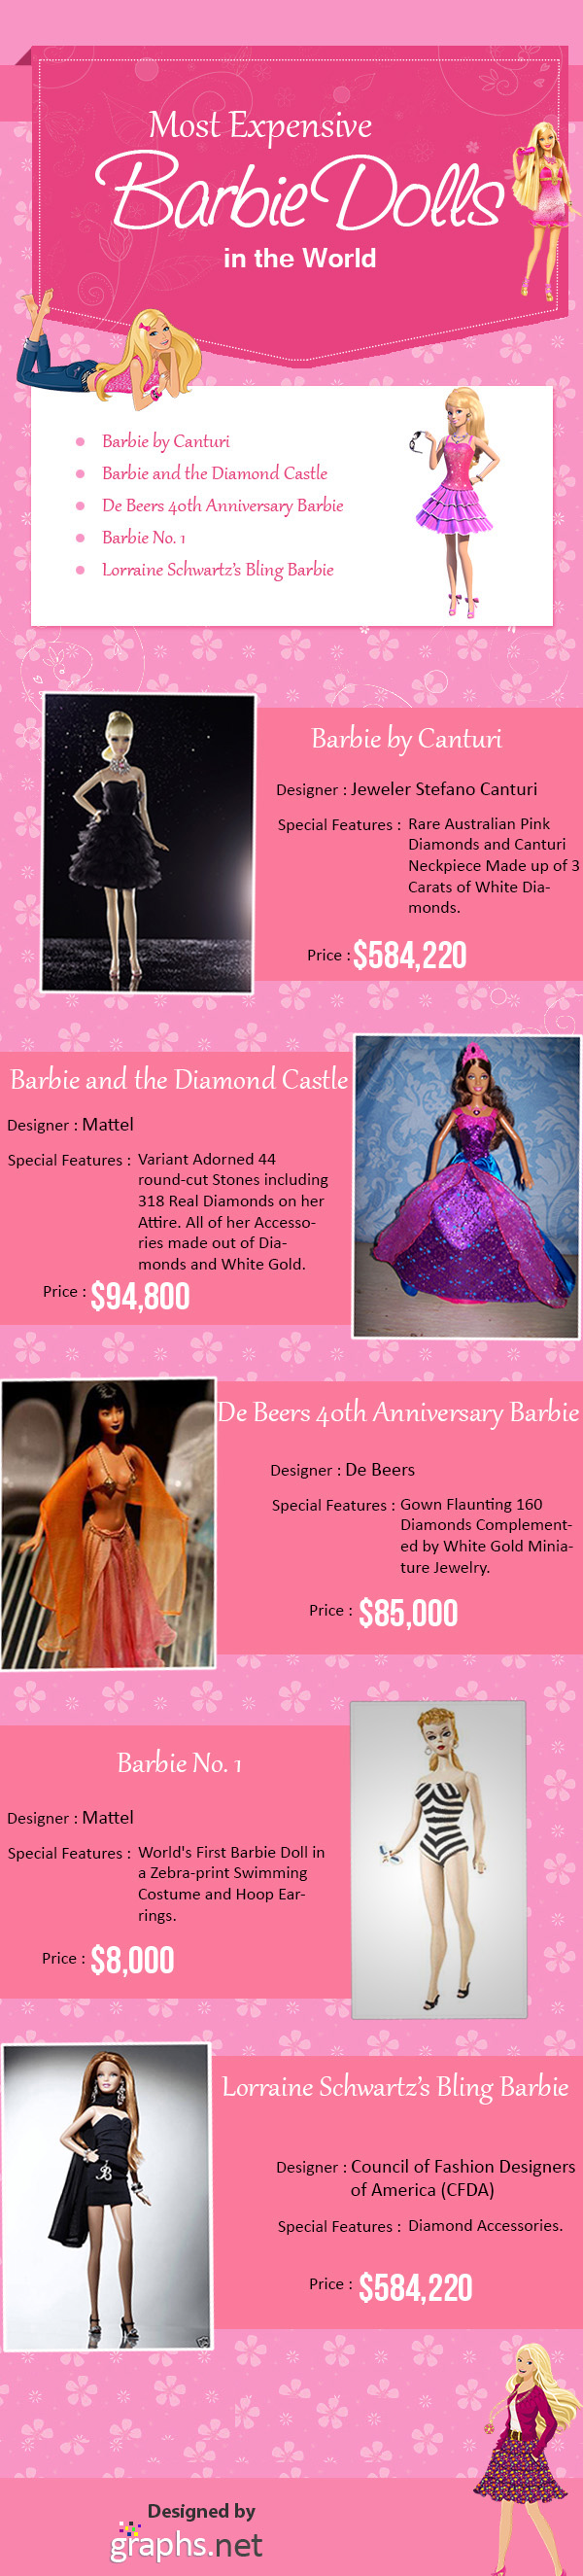 Most Expensive Barbie Dolls in the World-Recovered